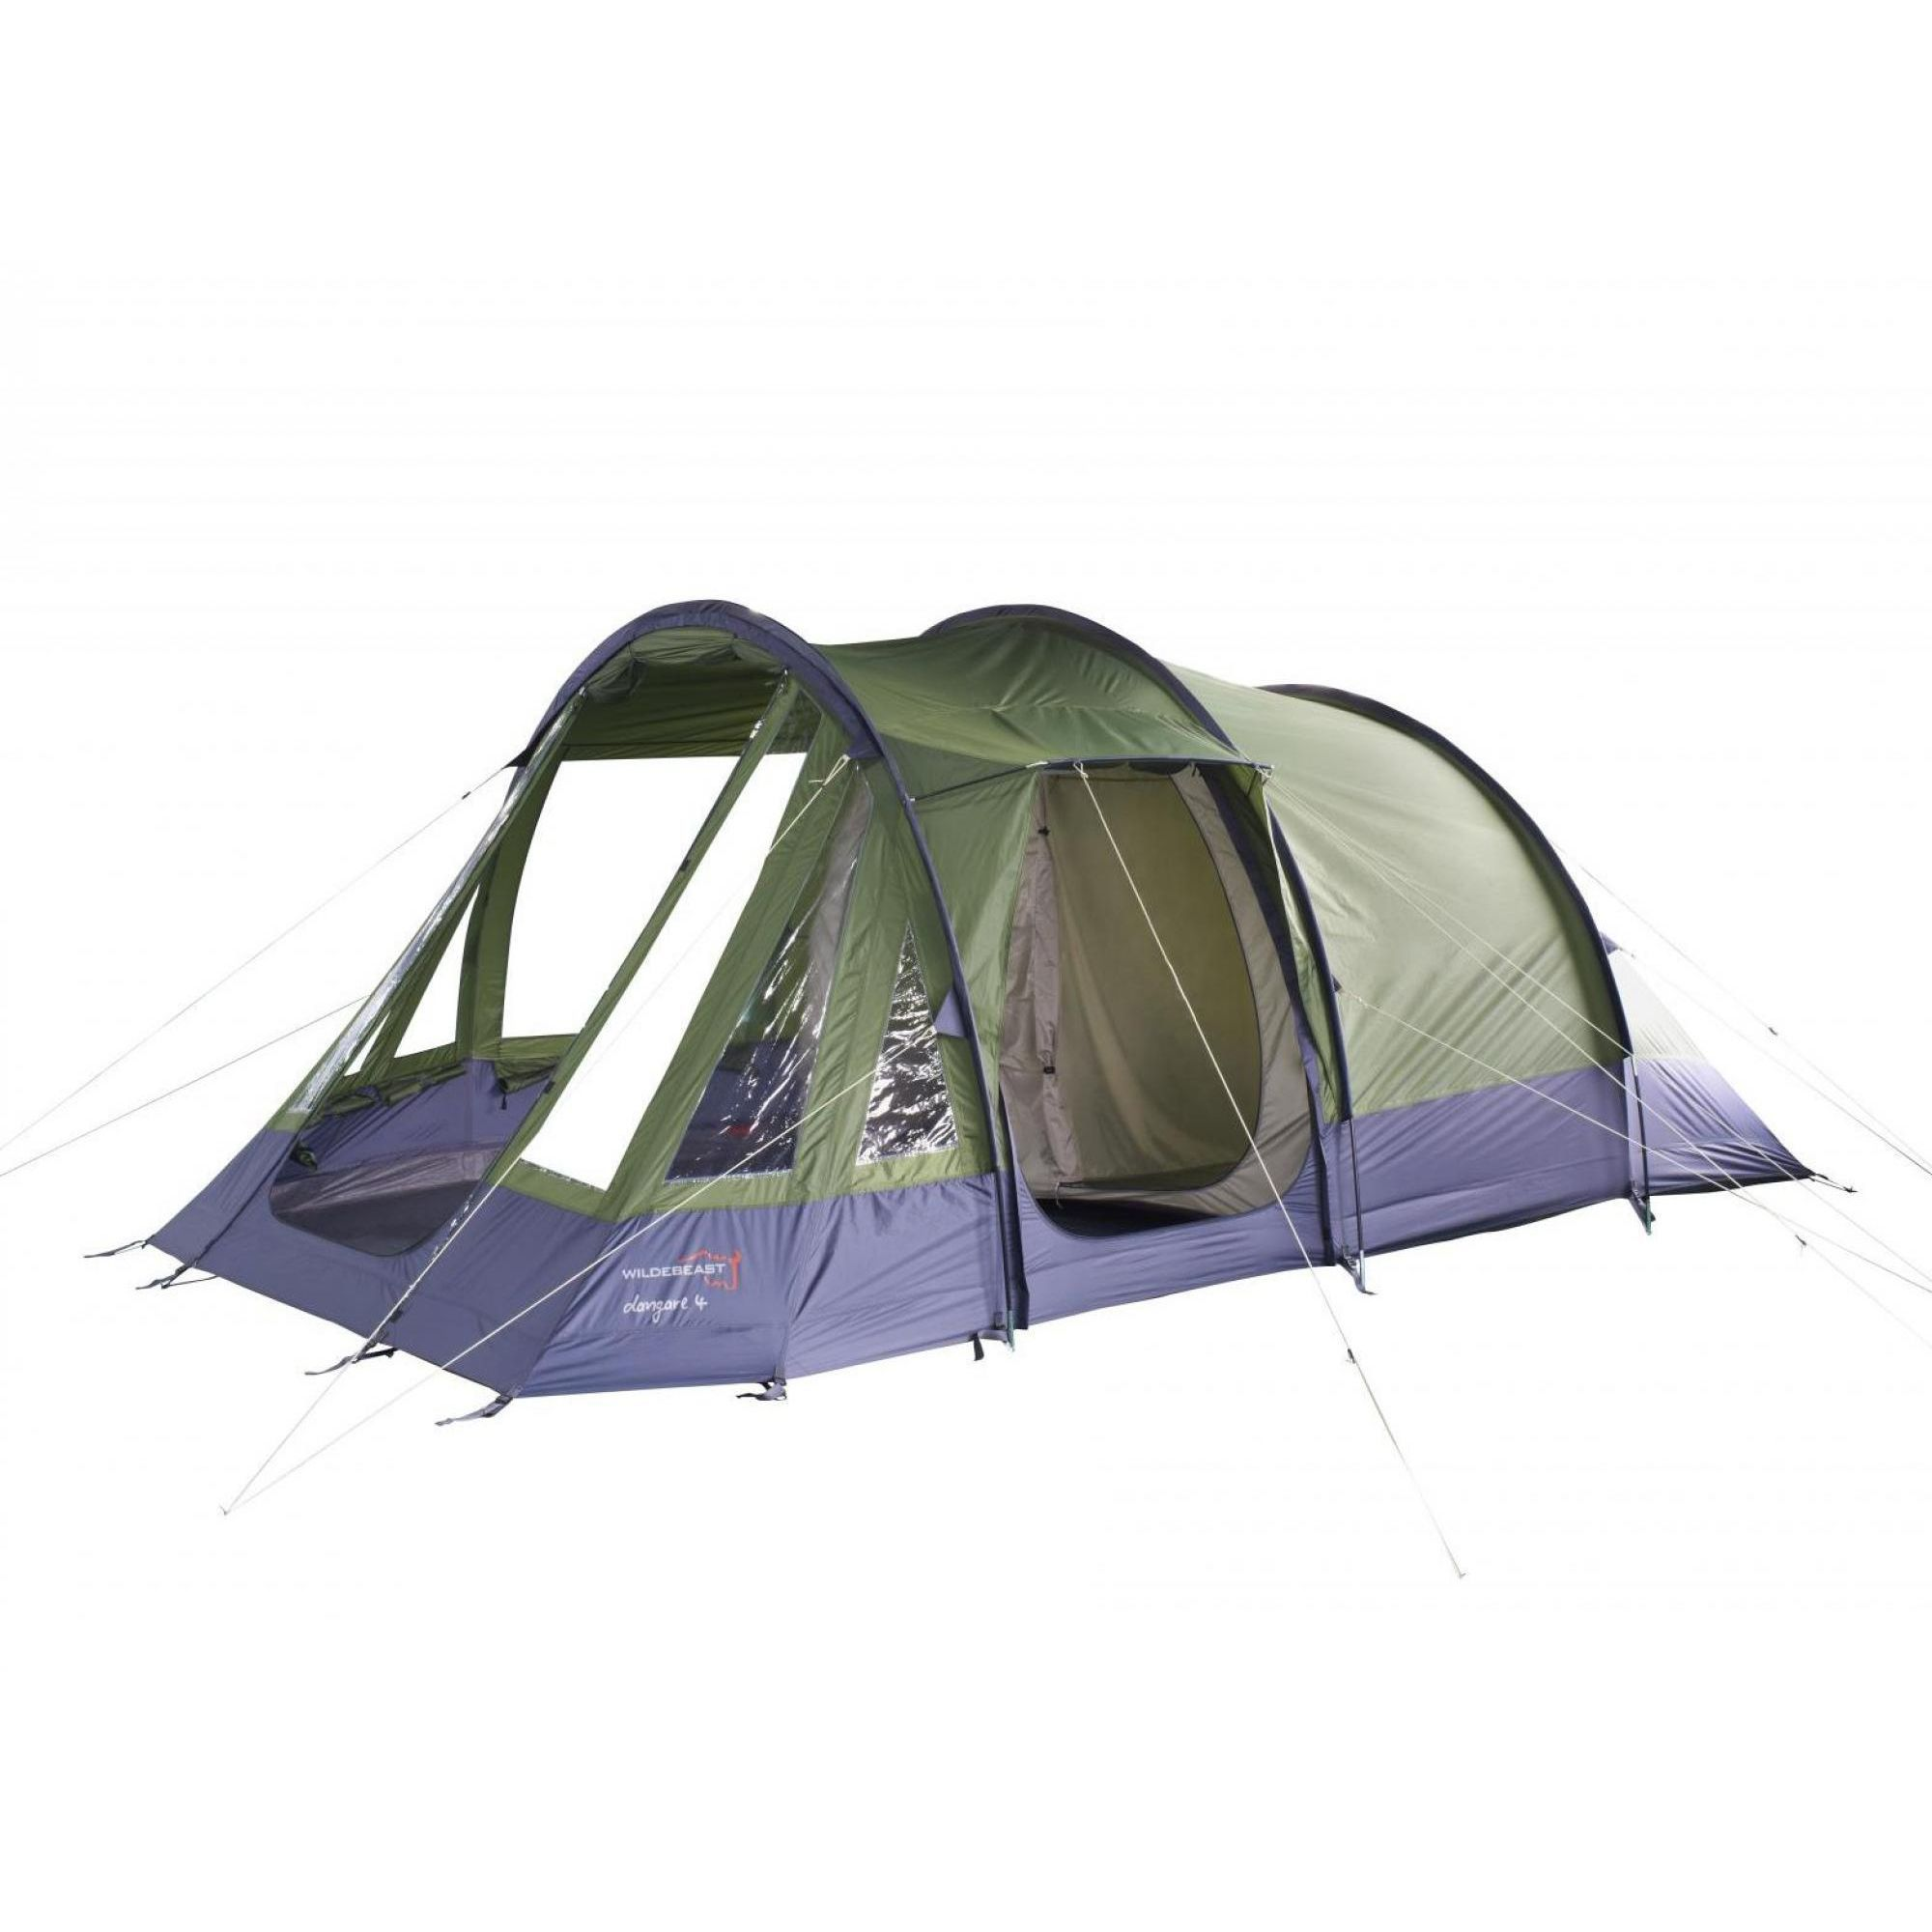 Spiksplinternieuw WILDEBEAST DANGARA 4 De Dangare 4 is een 4 persoons tunnel tent WP-89